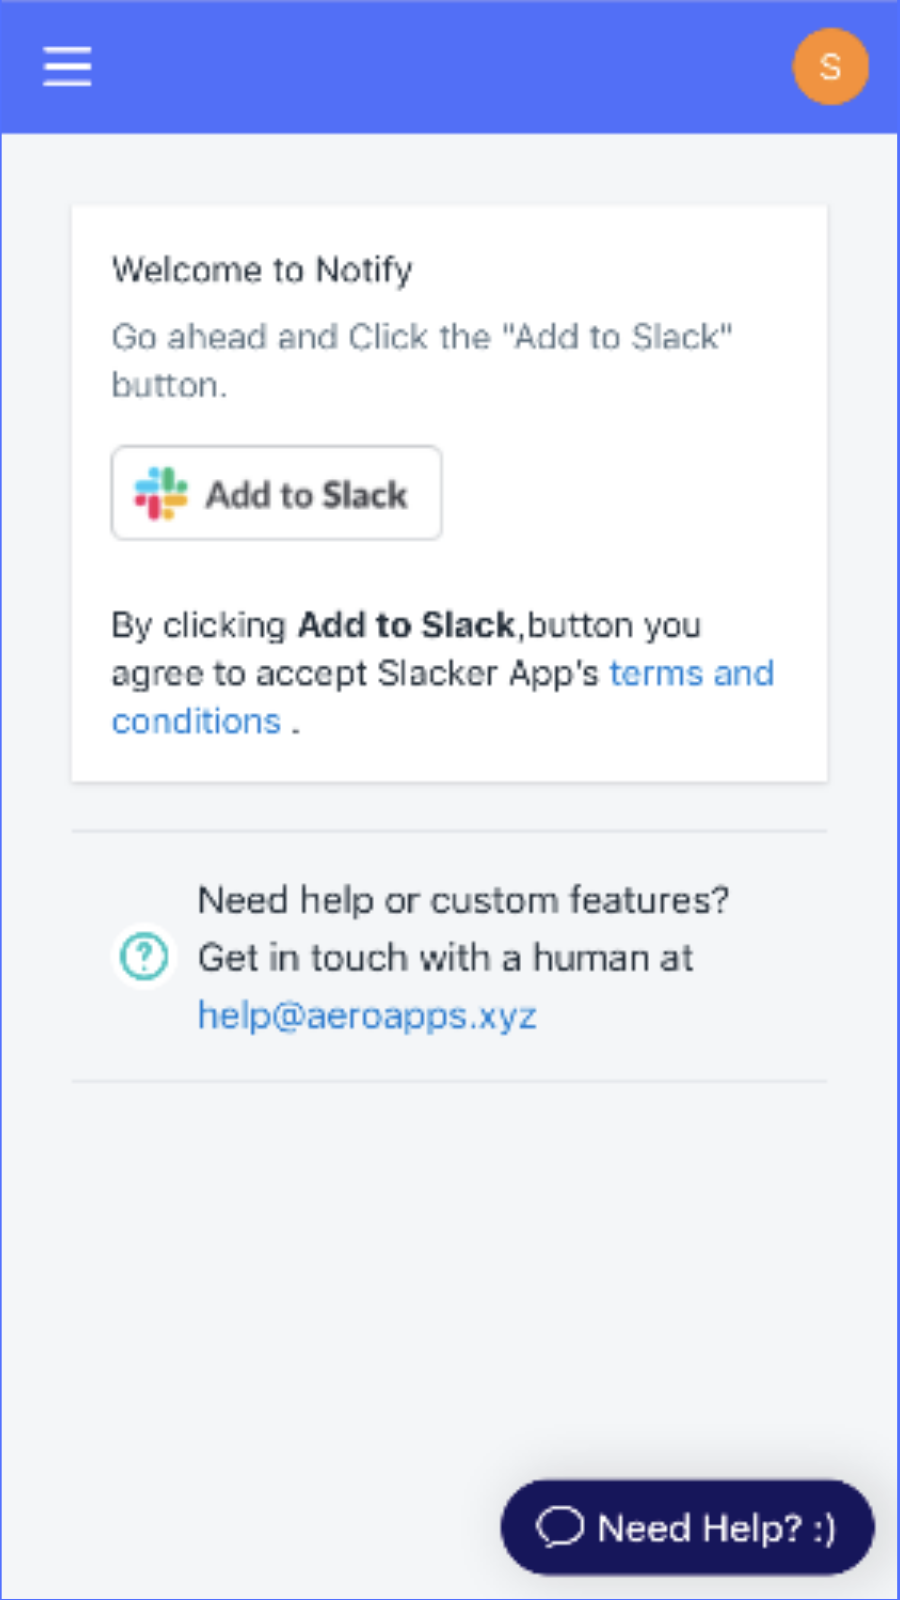 Shopify Slack connect or integration page on mobile view